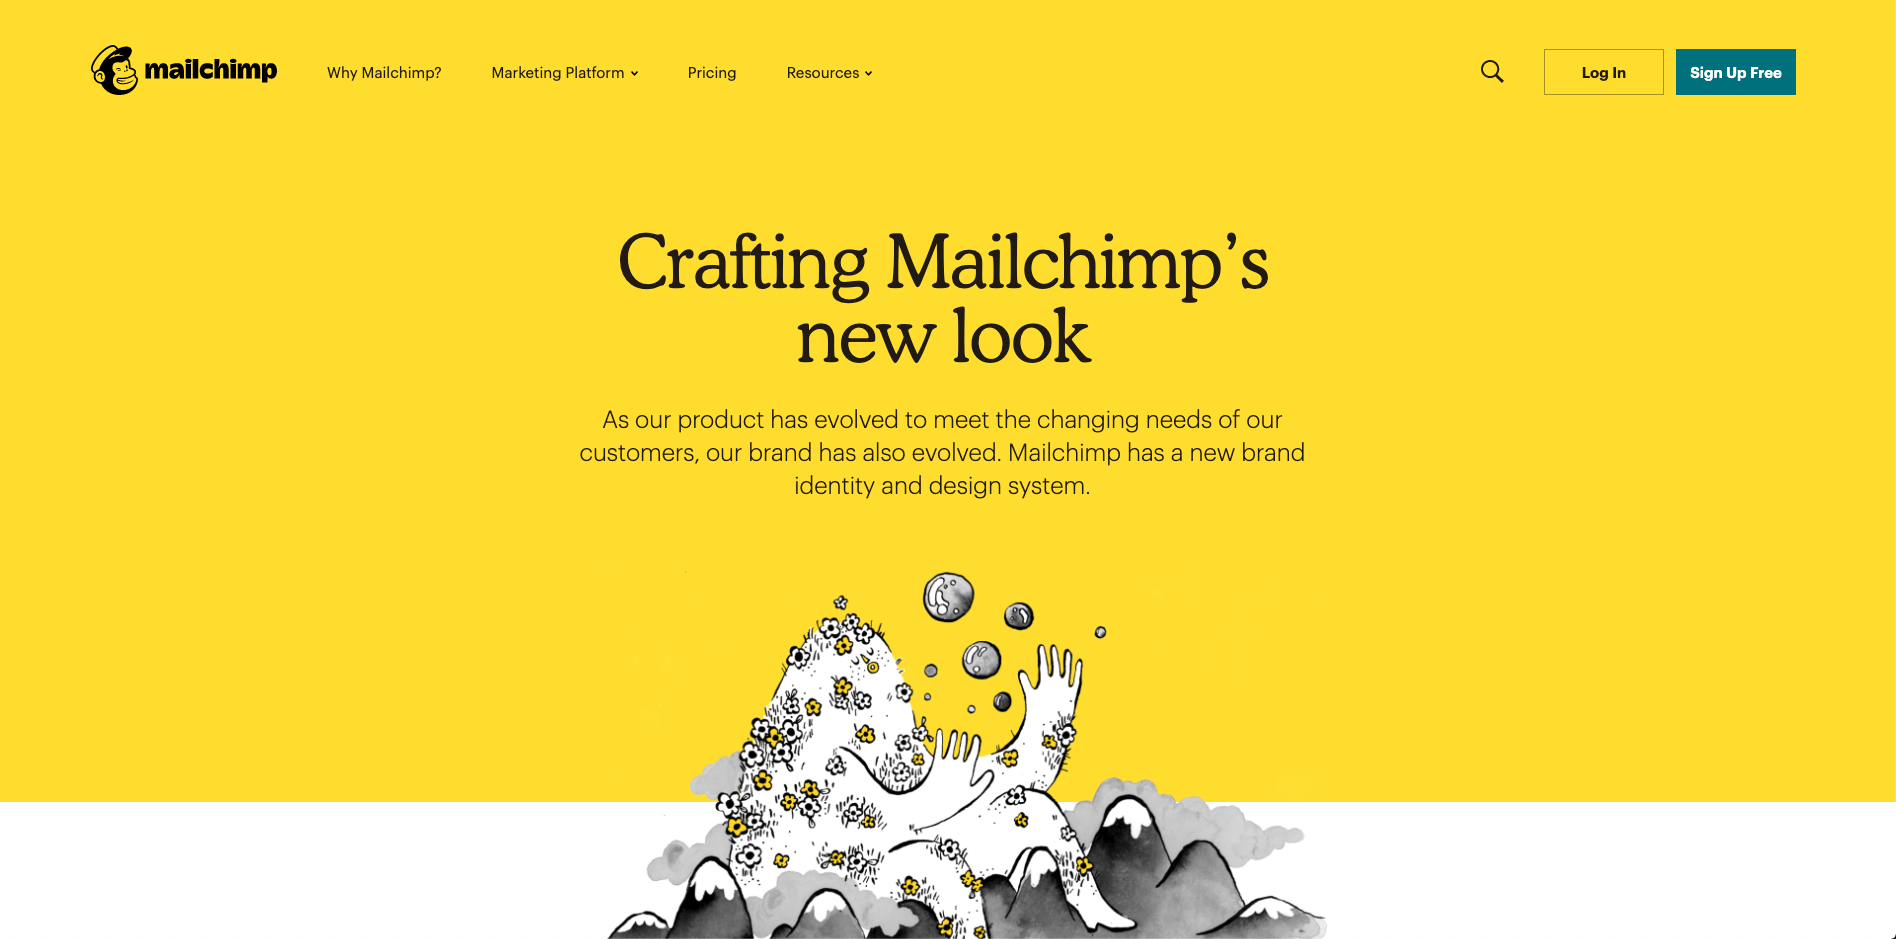 Mailchimps-landing-page-for-branding-displaying-use-of-Cooper-Light